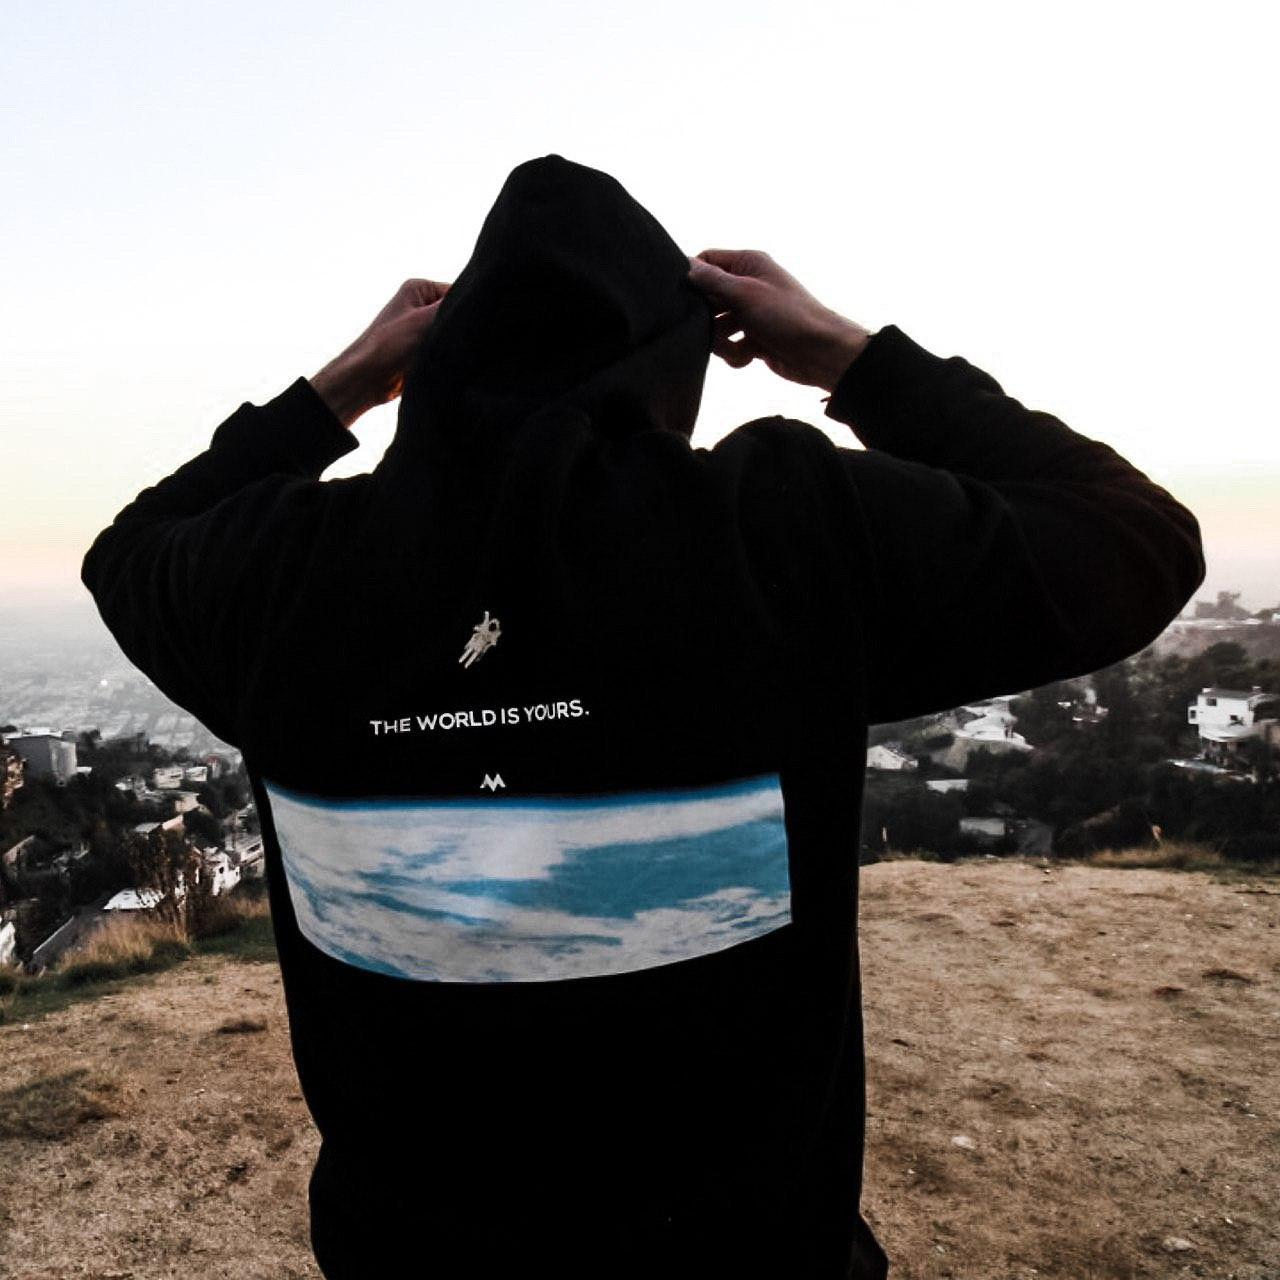 The Mentality Lifestyle Brand Is Out to Change People's Lives Through Its Powerful Culture of Ambition